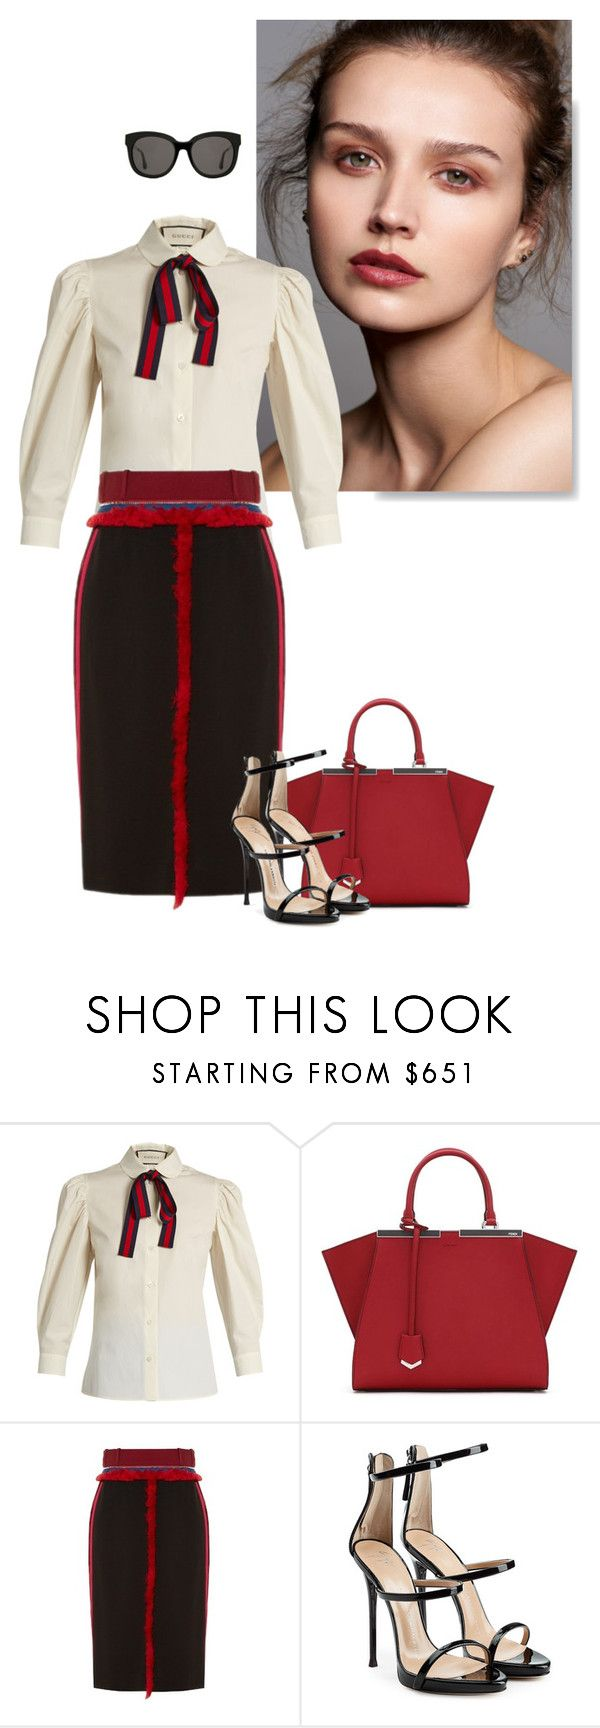 """""""Untitled #758"""" by mrsmaggiemay ❤ liked on Polyvore featuring Gucci, Fendi, Altuzarra, Giuseppe Zanotti and Gentle Monster"""